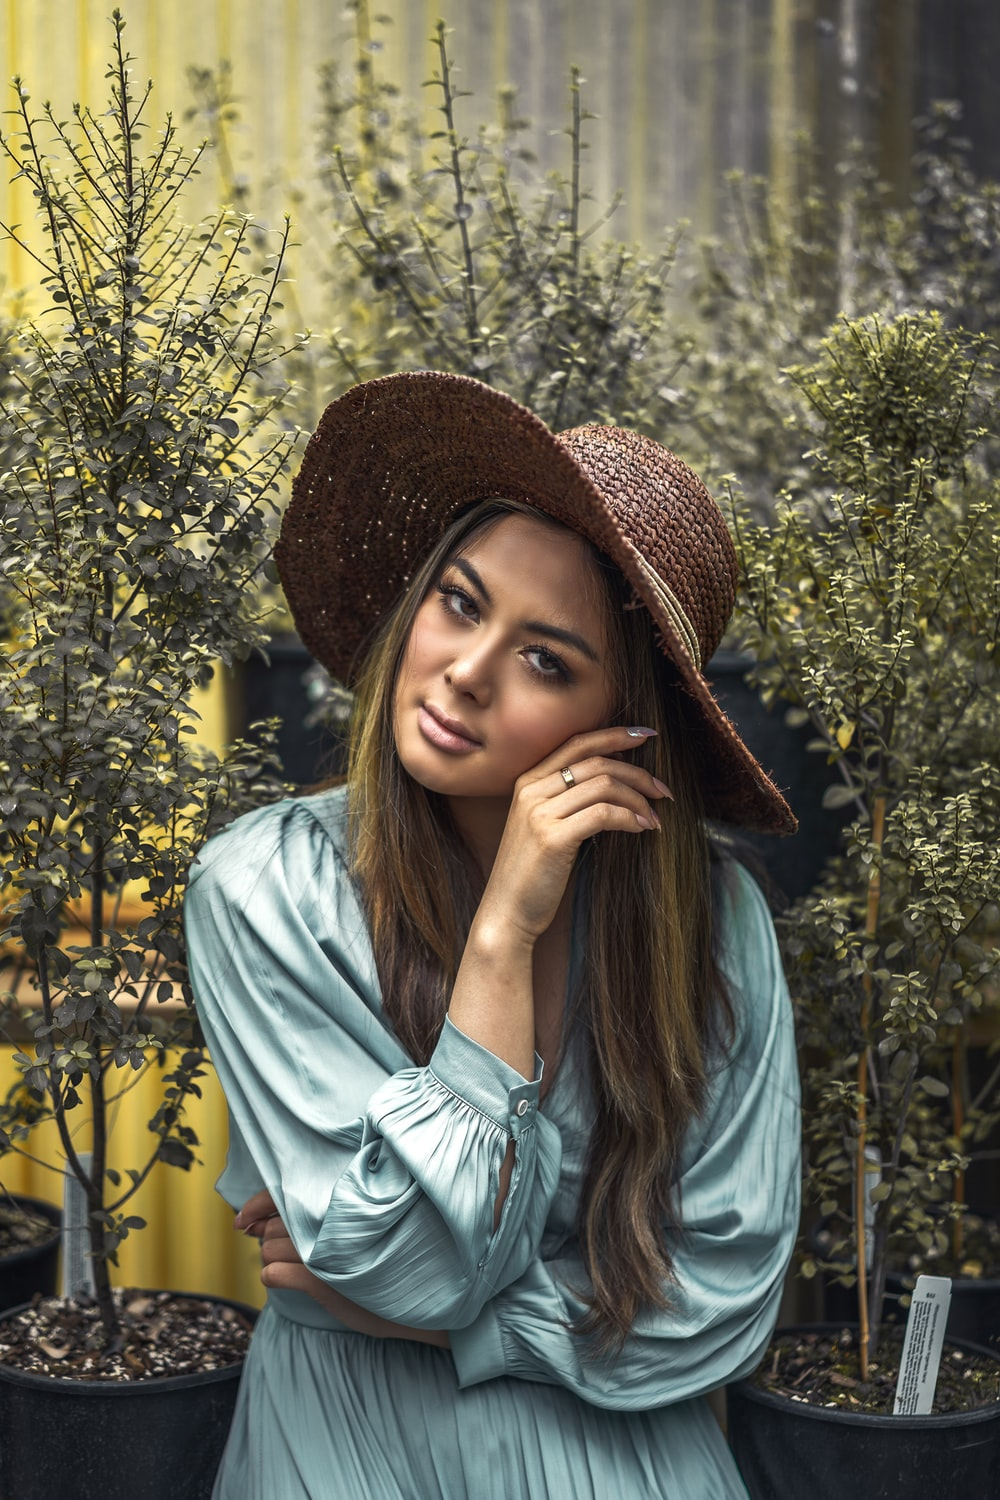 woman in blue dress shirt and brown hat standing near yellow flowers